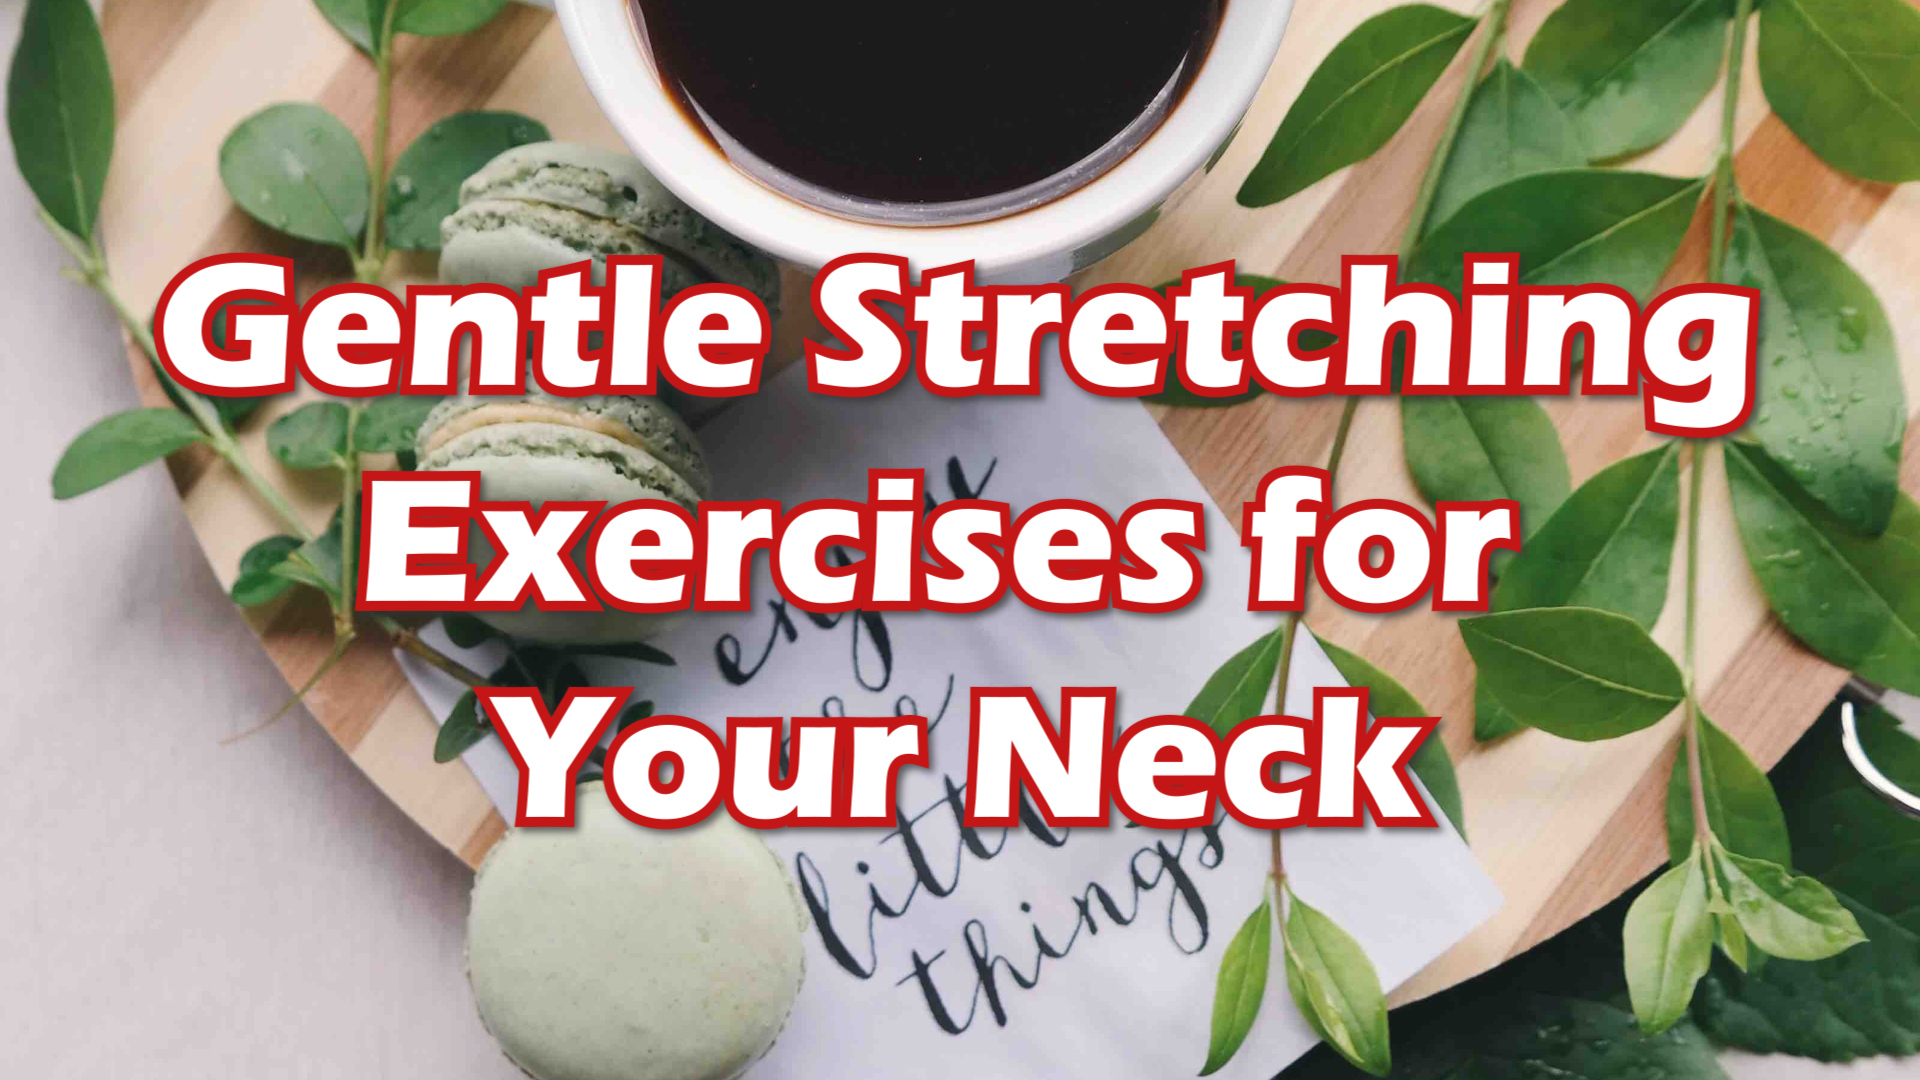 Gentle Stretching Exercises for Your Neck thumbnail